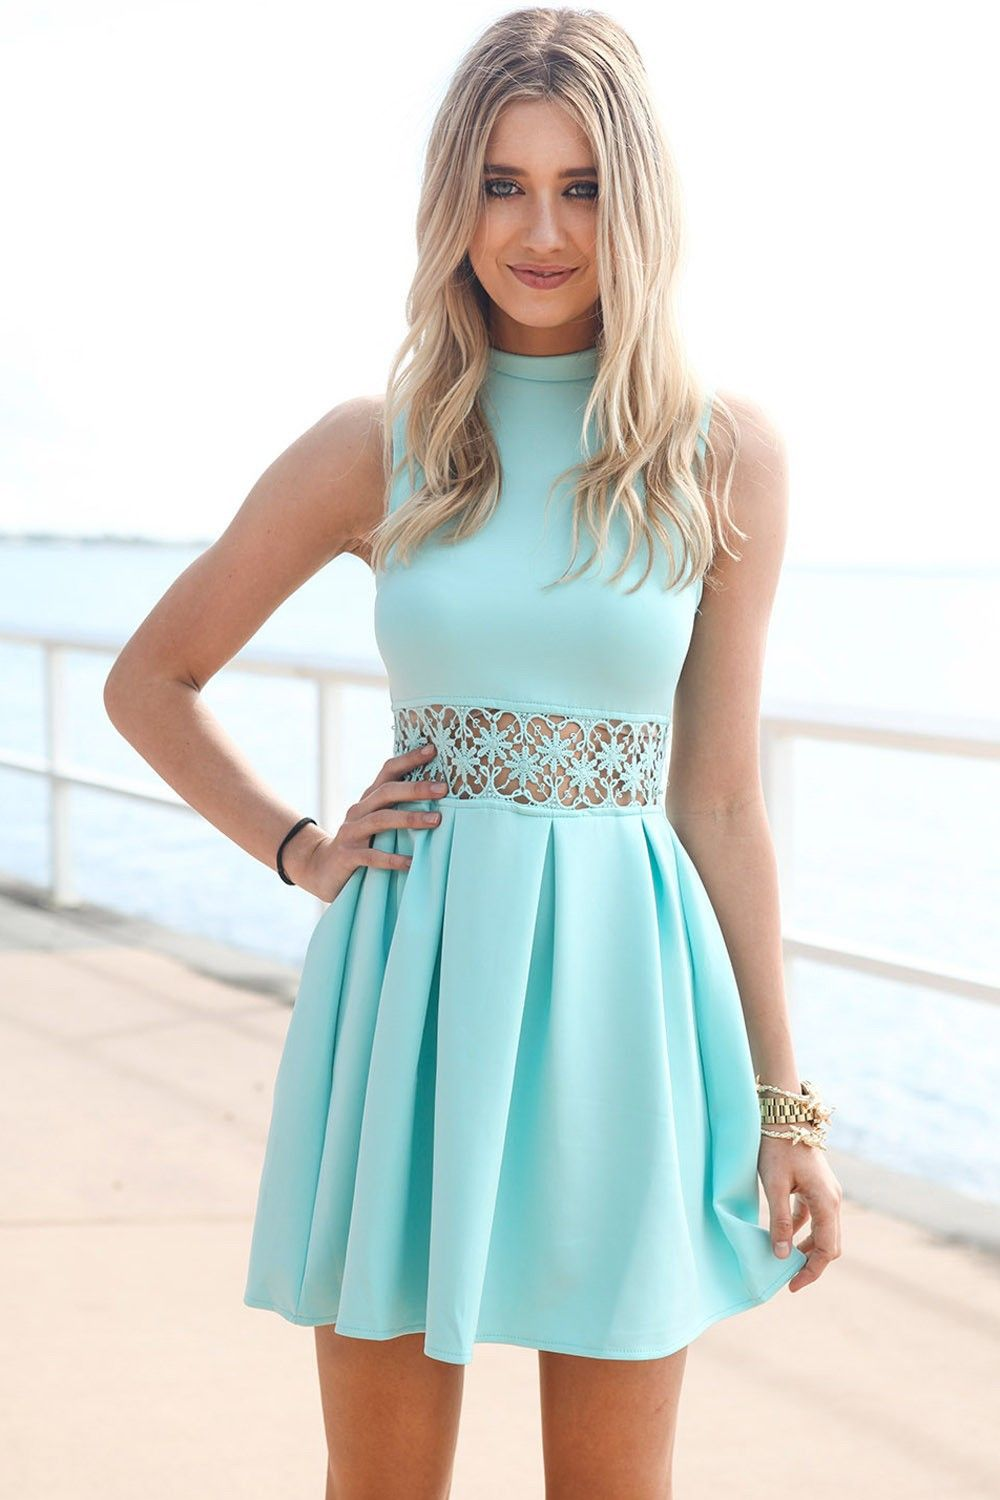 Pin by Анна Лиственкова on Платья | Pinterest | Clothes, Prom and ...